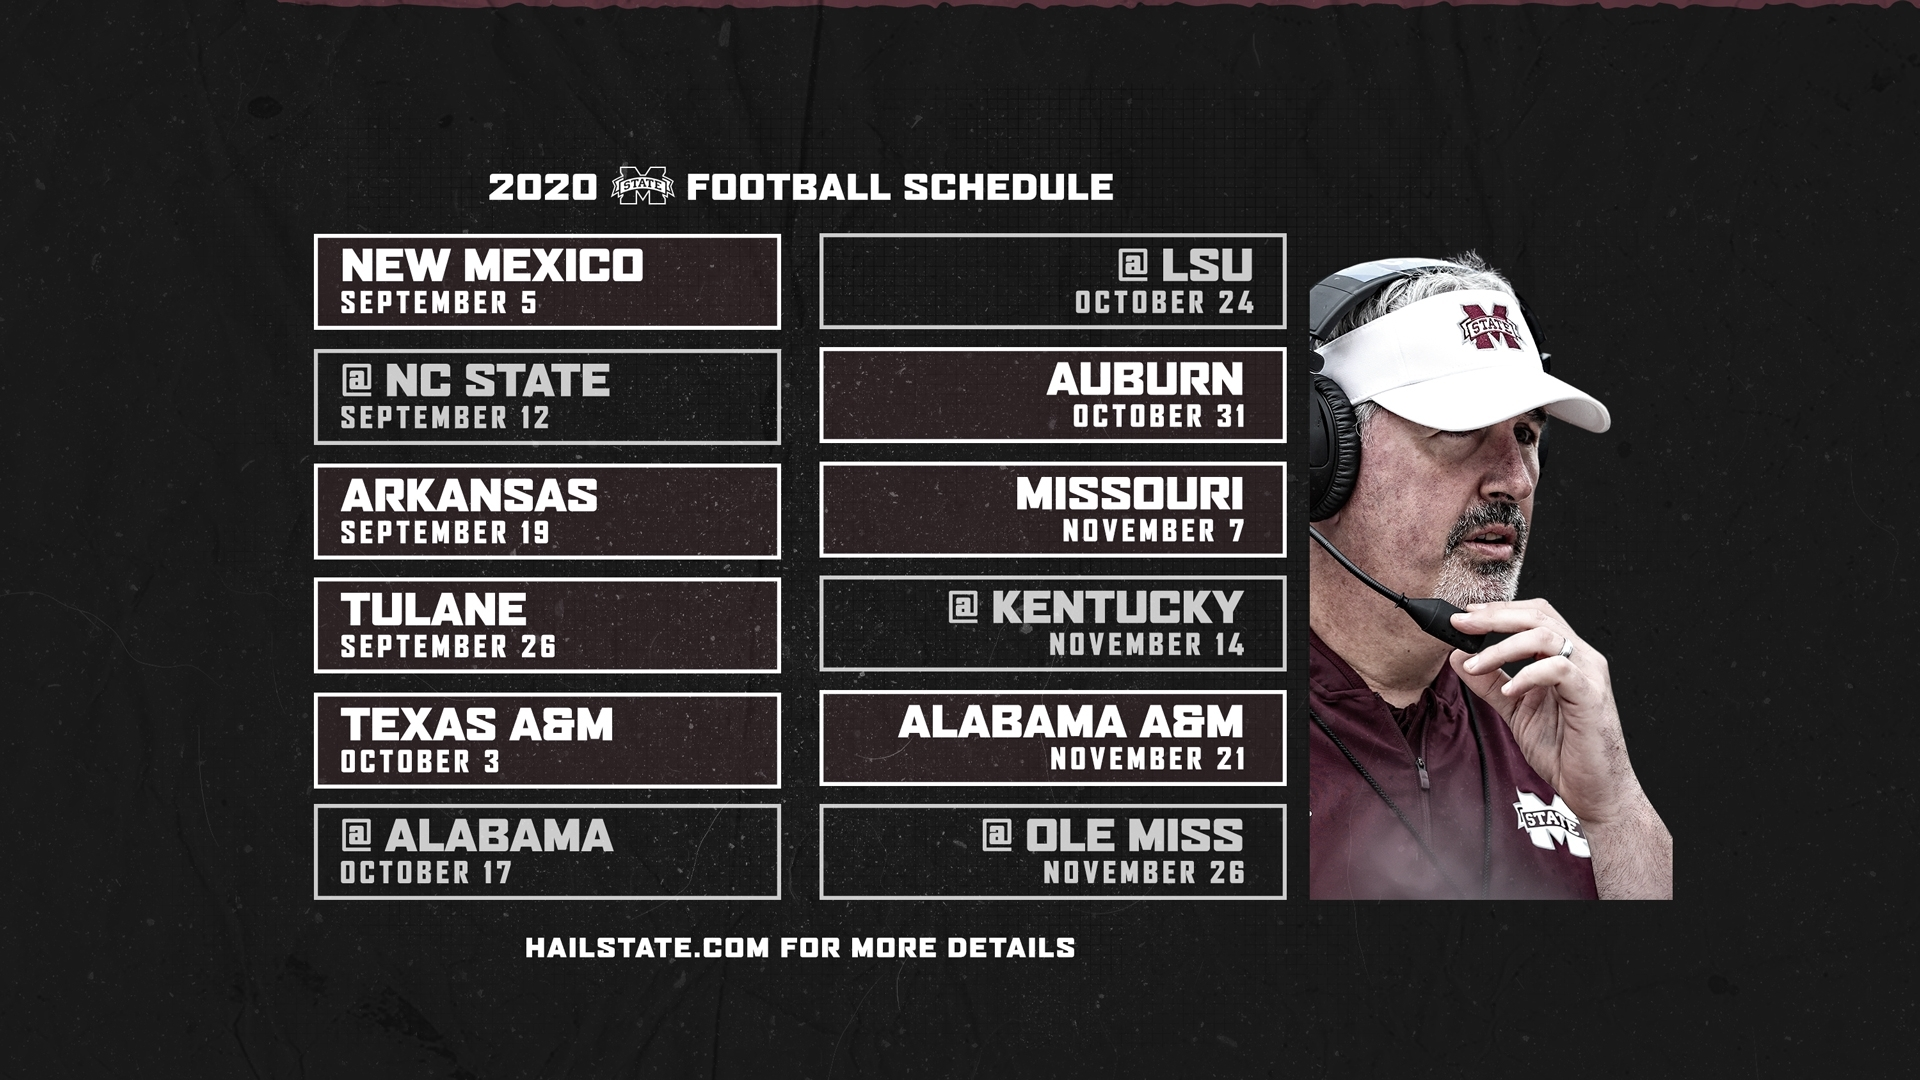 2020 Football Schedule Announced - Mississippi State